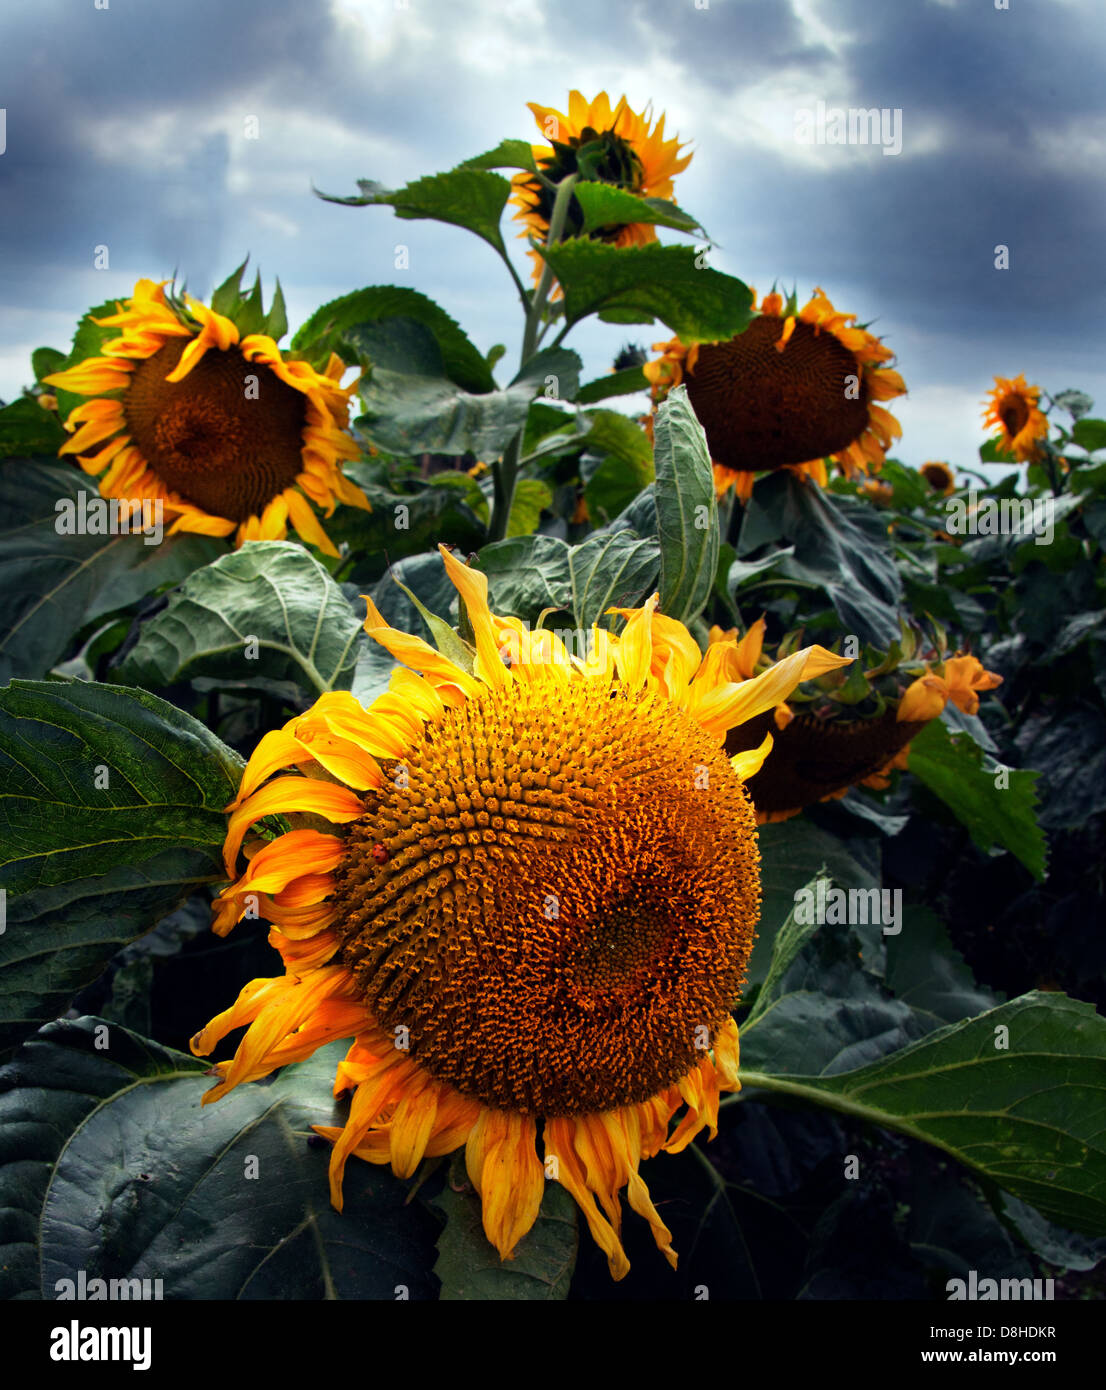 Orange sunflowers in a field with a moody gray sky behind Stock Photo